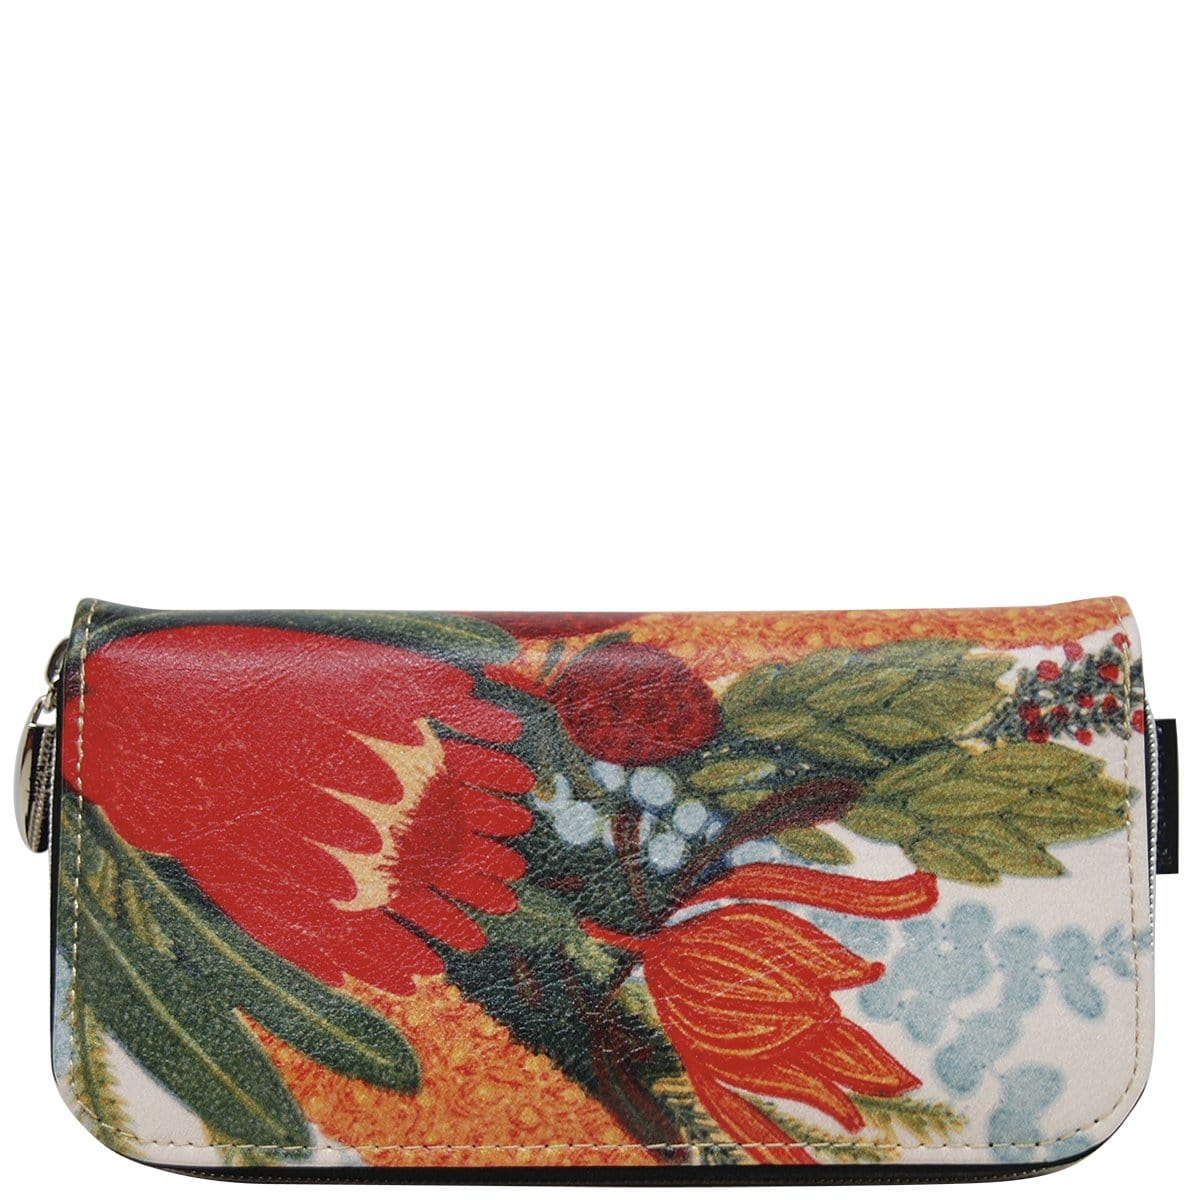 Floral Wallet - Native Posy